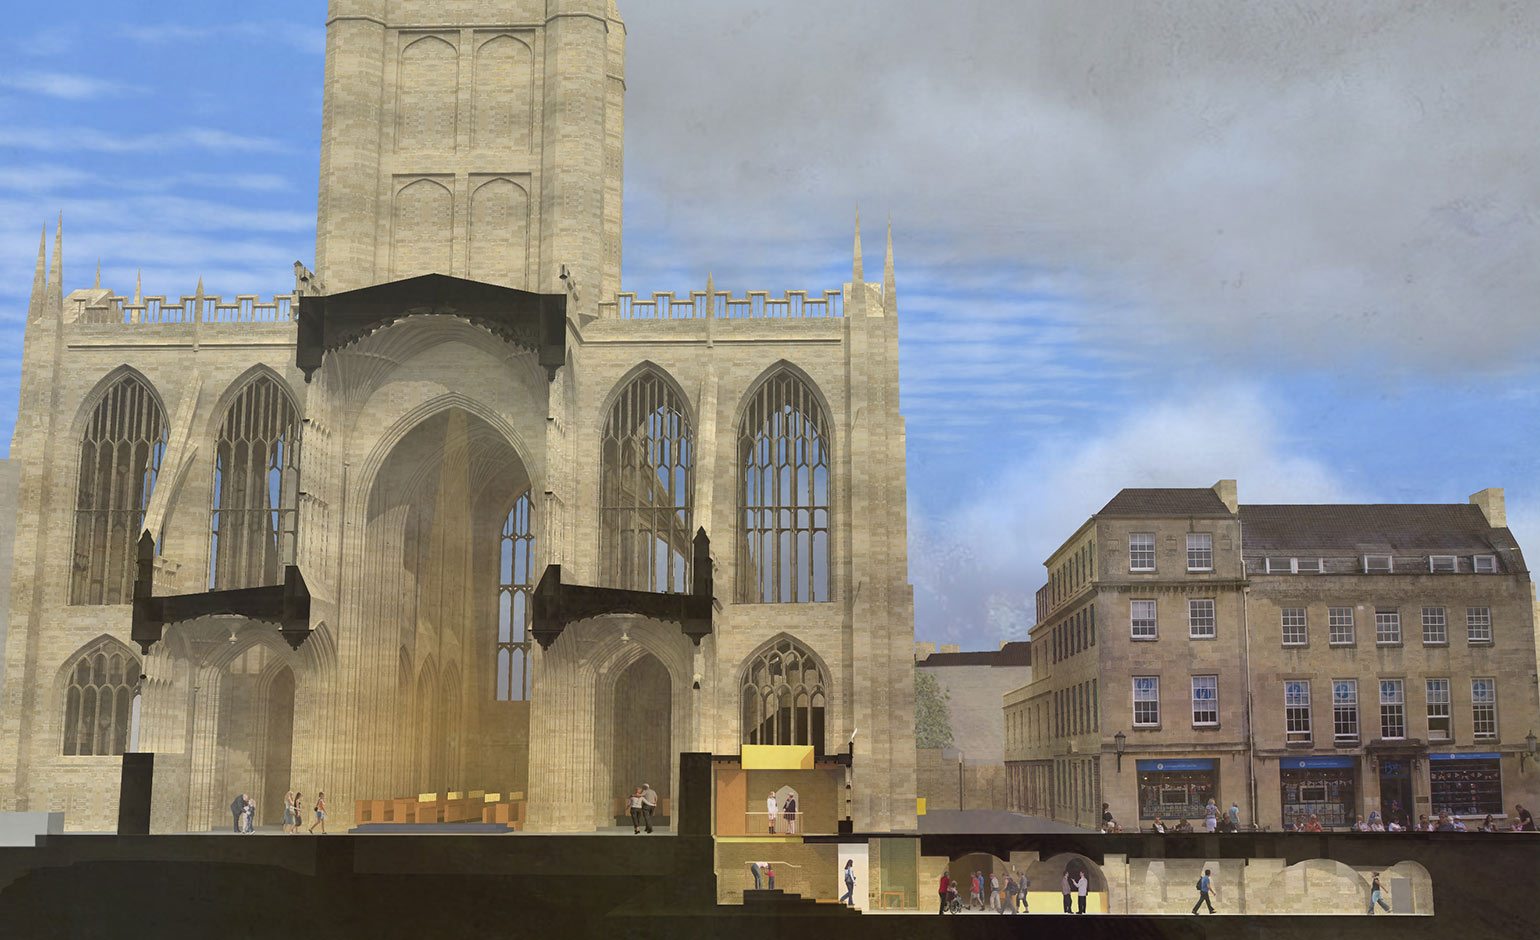 Abbey's Footprint project receives £200k boost from local philanthropist | Bath Echo